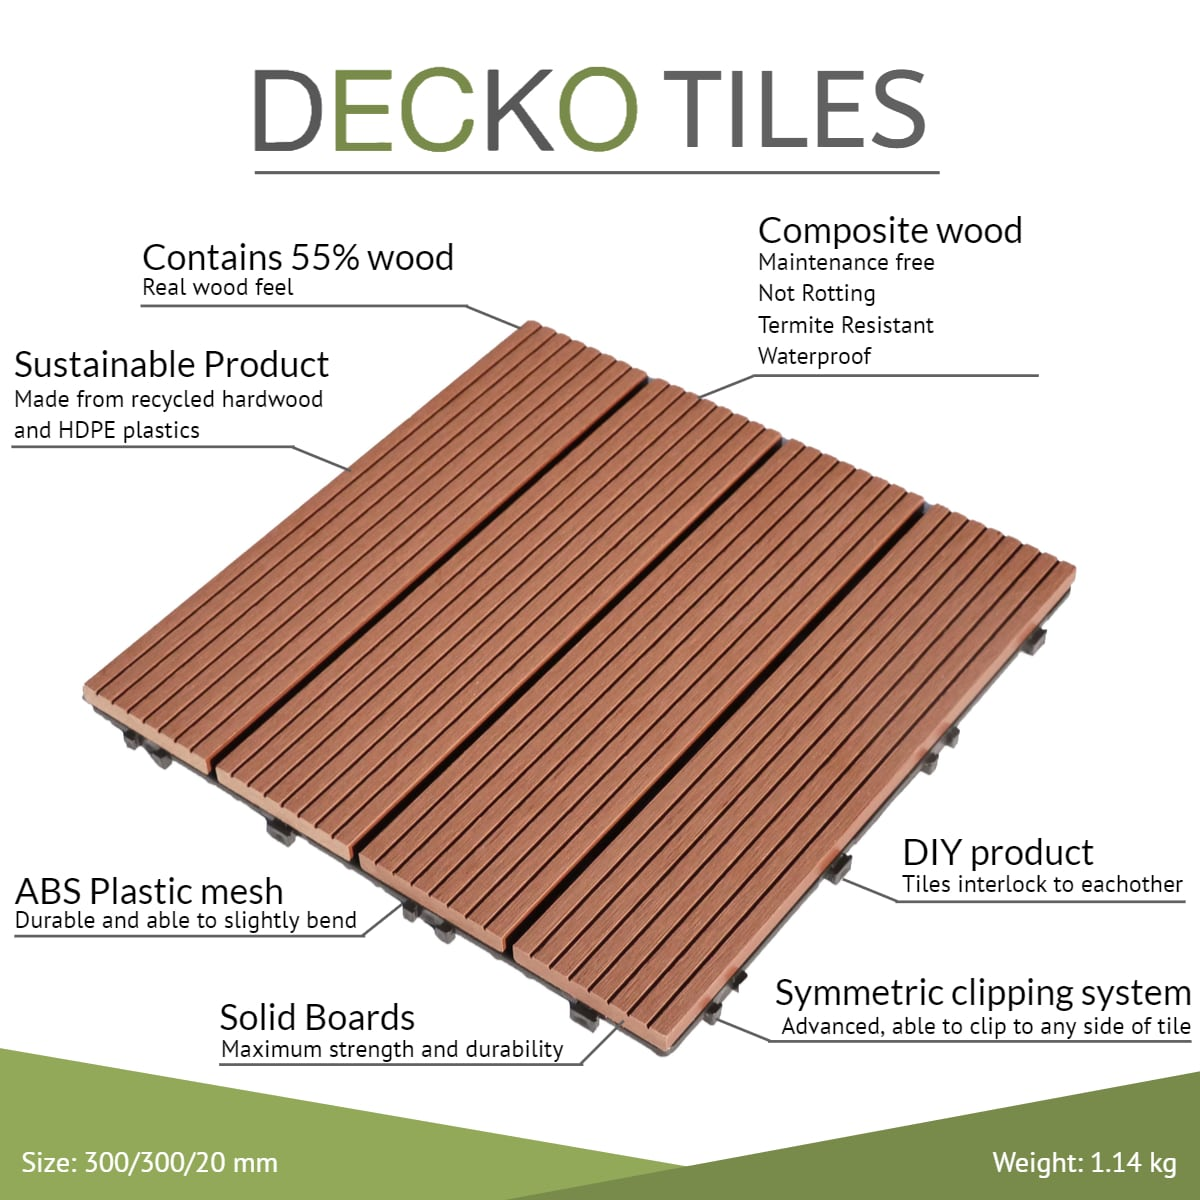 Advantages of Decko Tiles over Ikea tiles